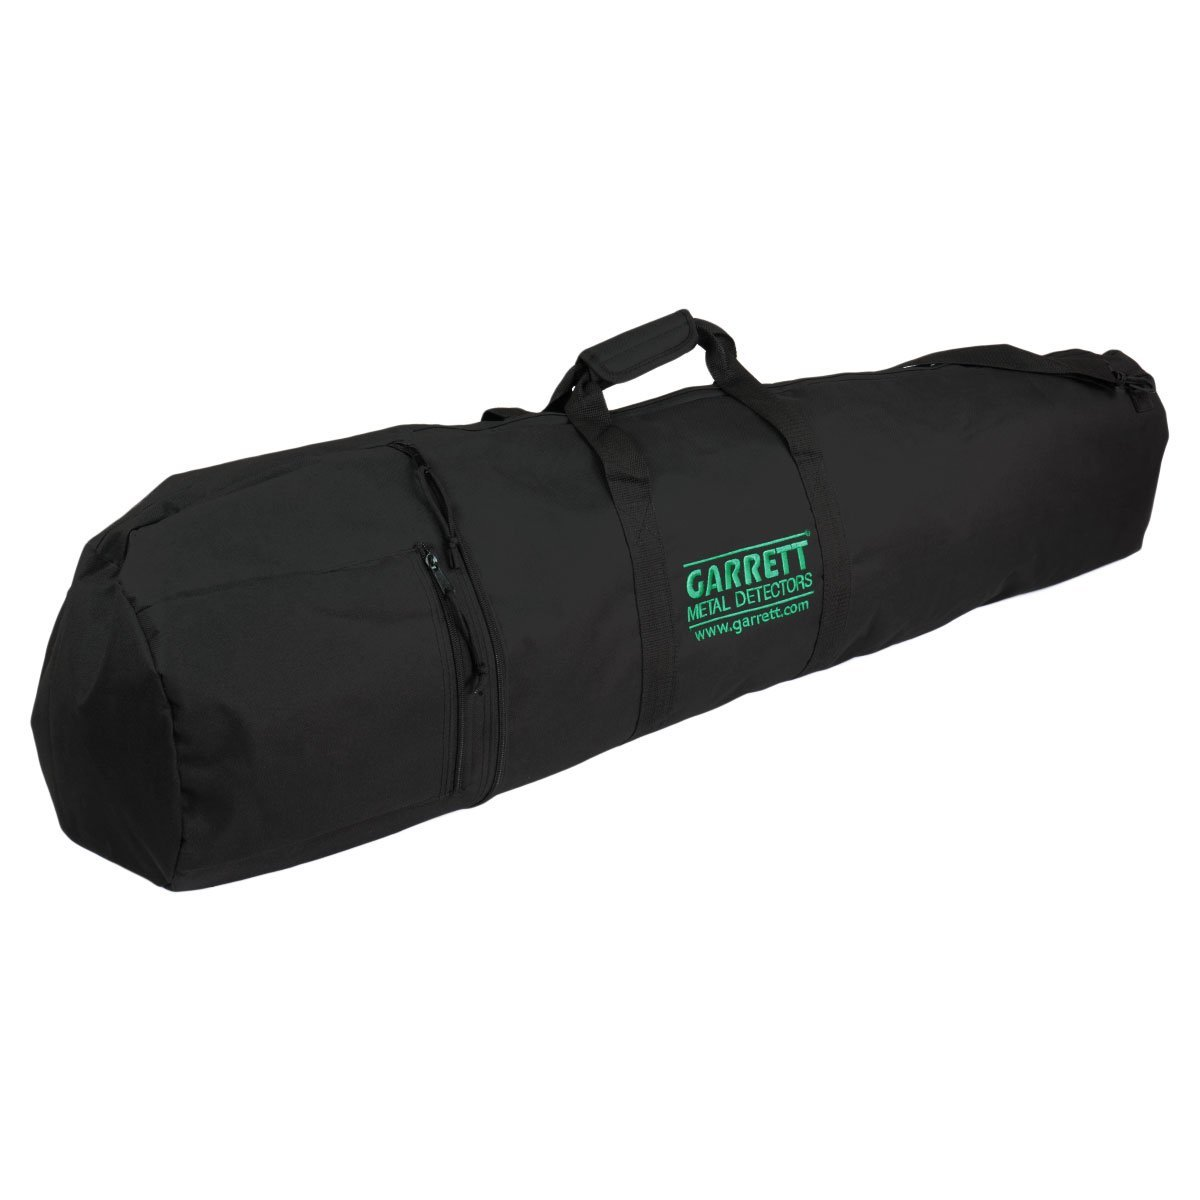 All-Purpose Carry Bag